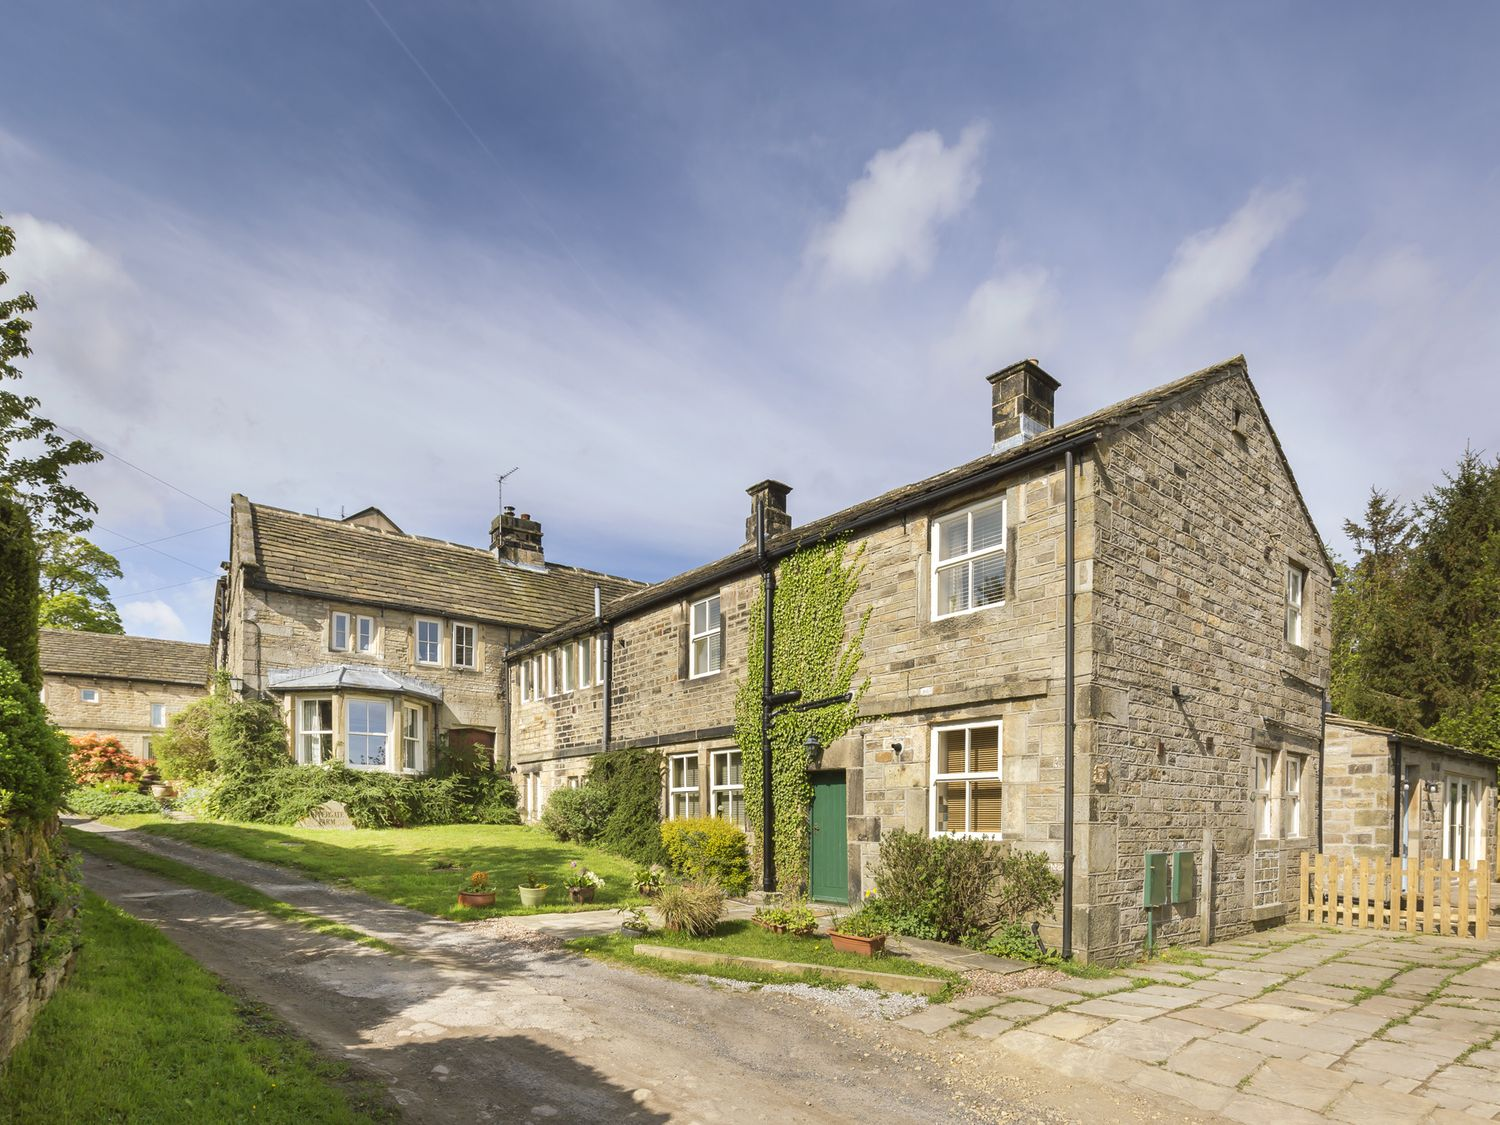 Bray Cottage - Peak District - 1883 - photo 1